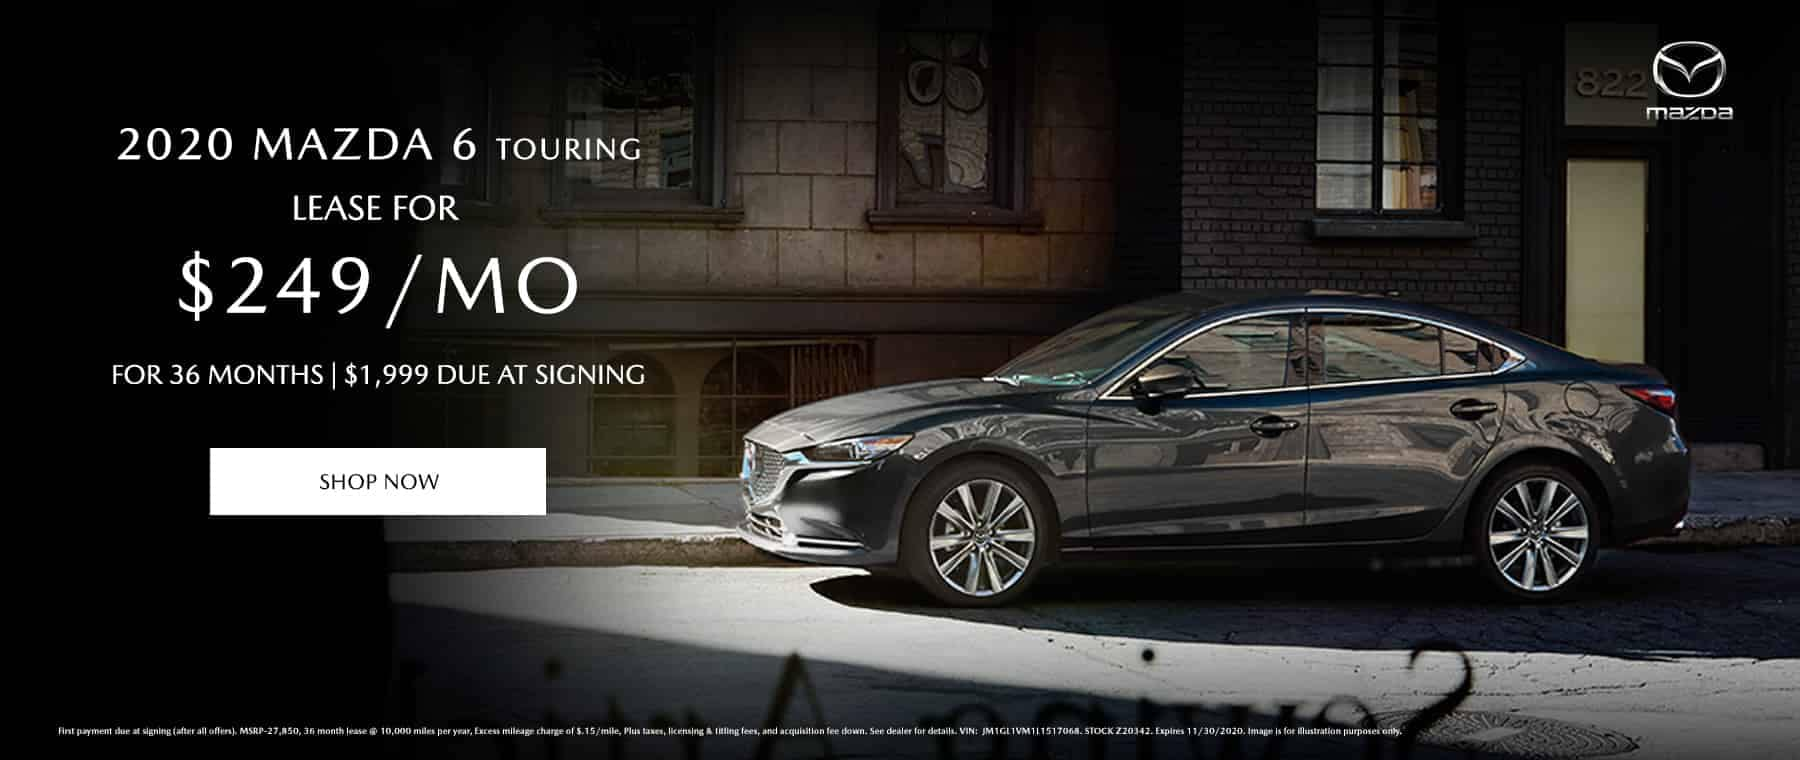 New Mazda 6 Touring for $249 per month